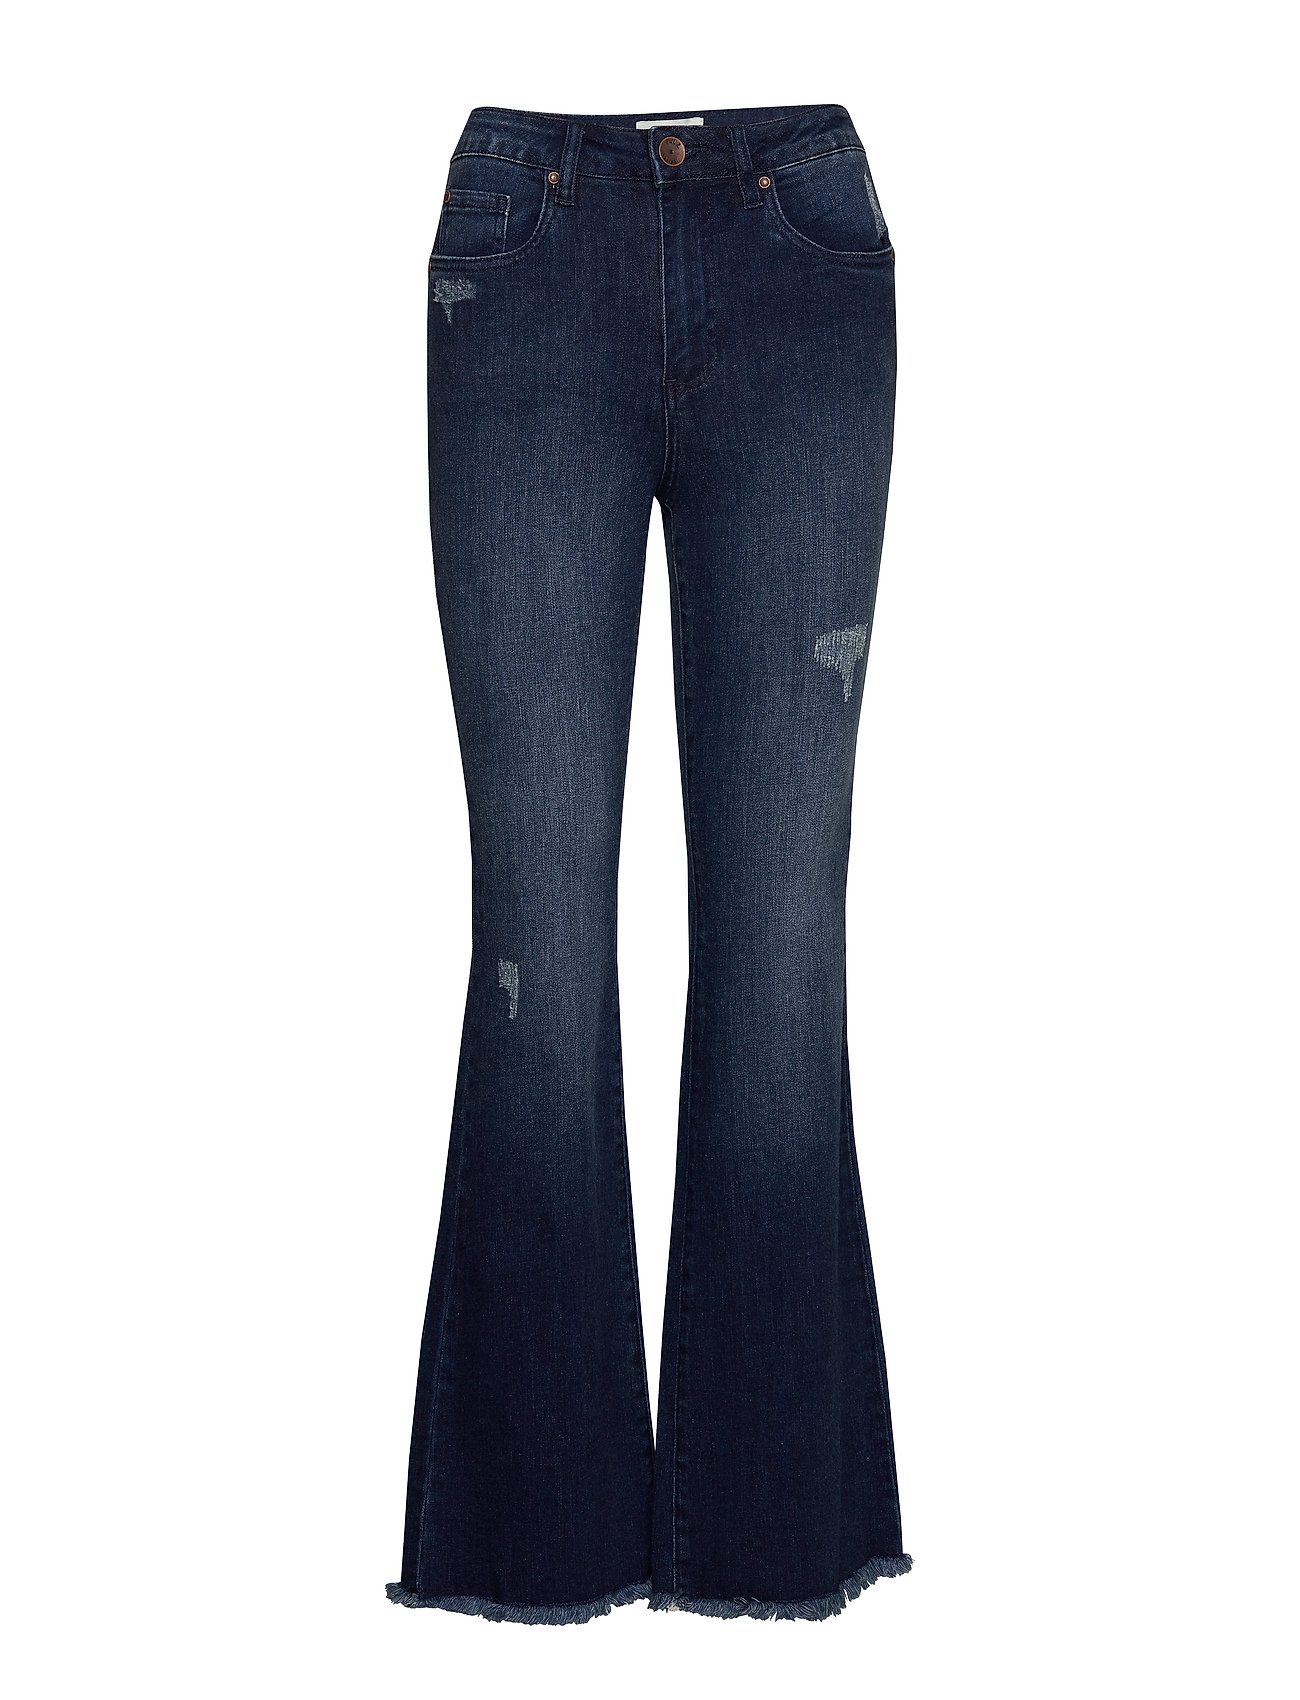 Pulz Jeans PZLIVA Ultra High Flared - DARK BLUE DENIM